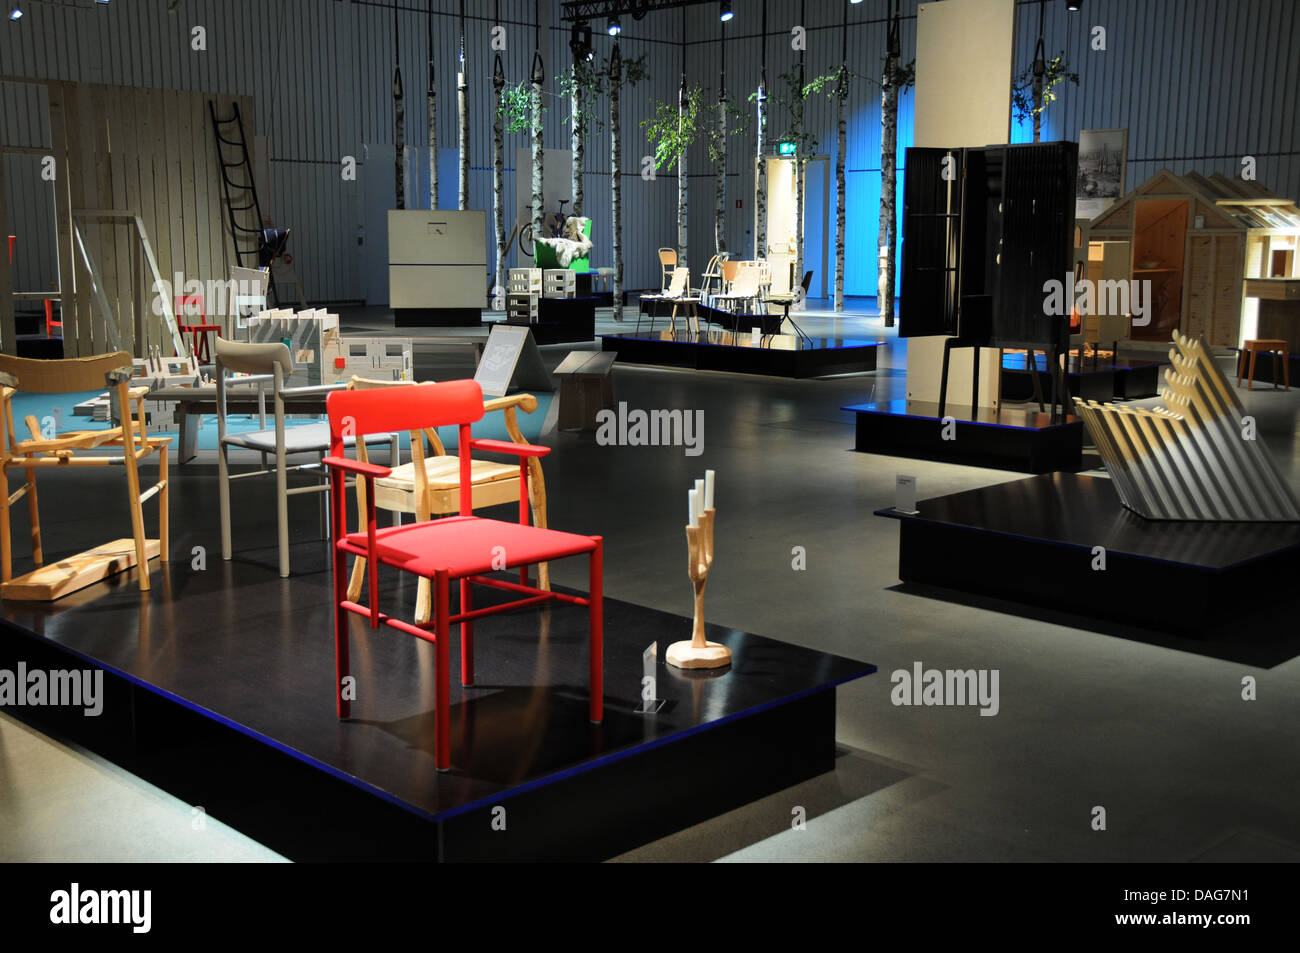 Artipelag is a new international venue for art, good food, events and activities ... set on Värmdö in - Stock Image